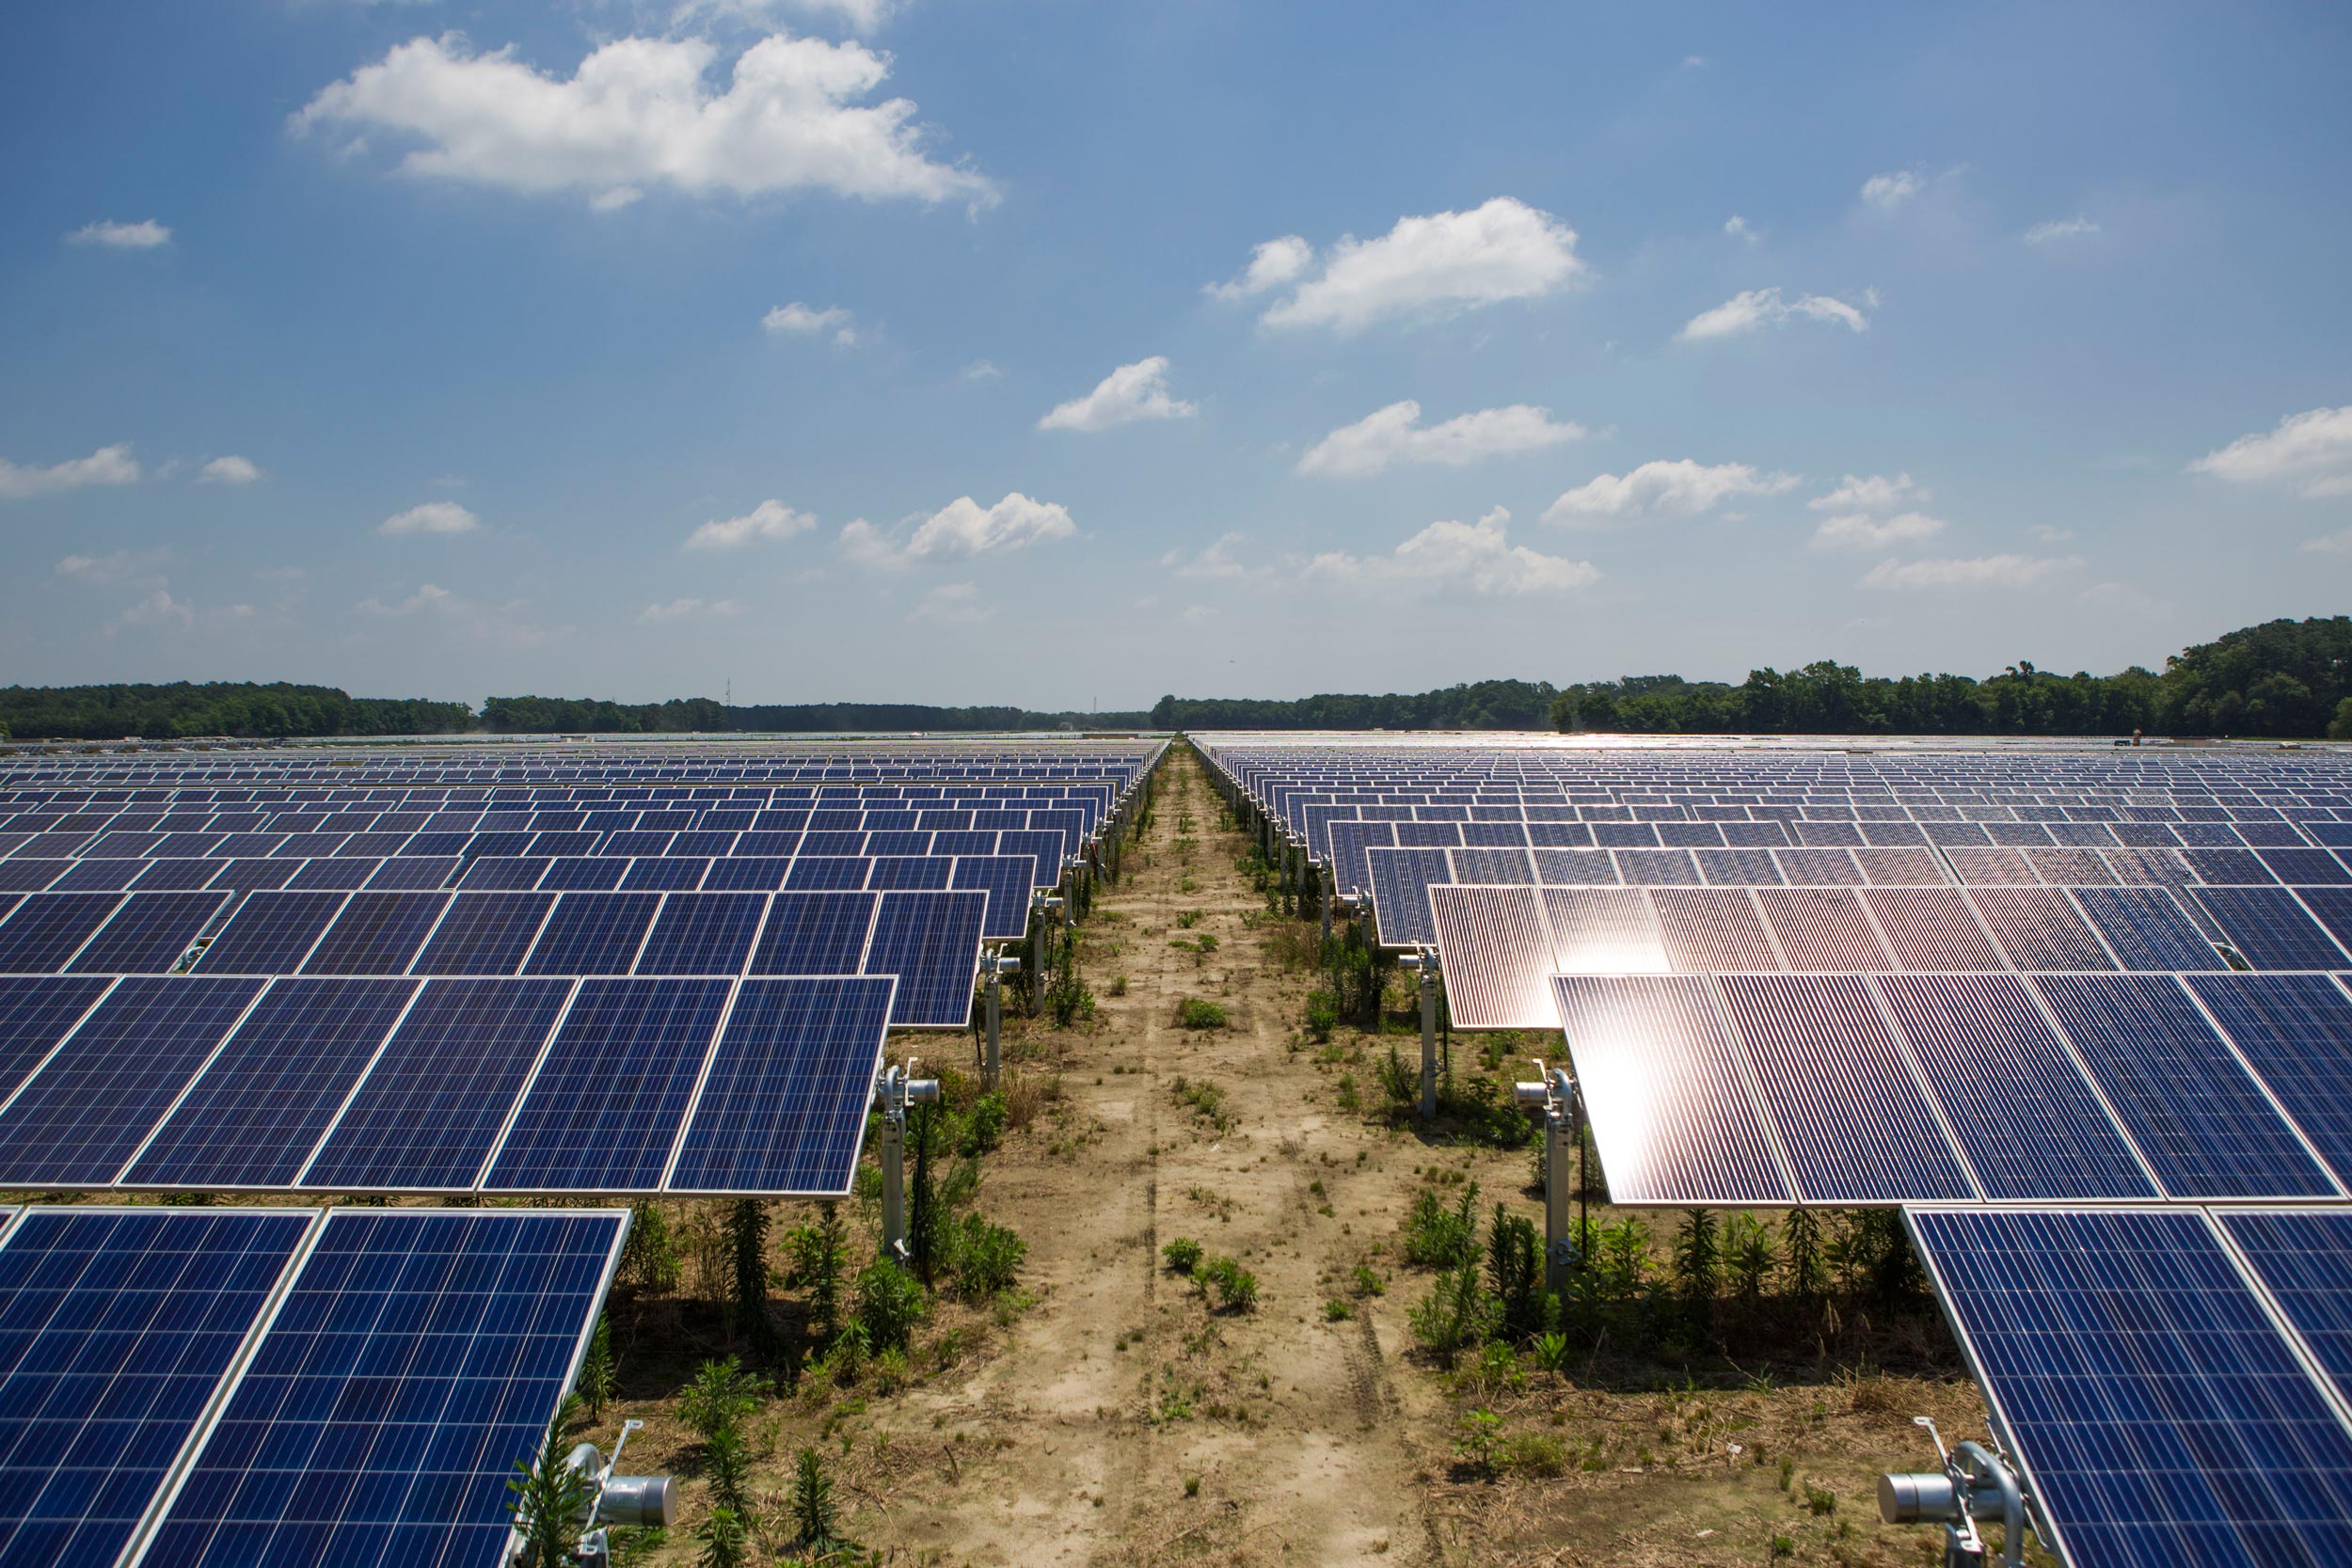 Among many efforts to expand its use of green energy, the University has signed long-term contracts with Dominion Energy to purchase the output of two solar farms.